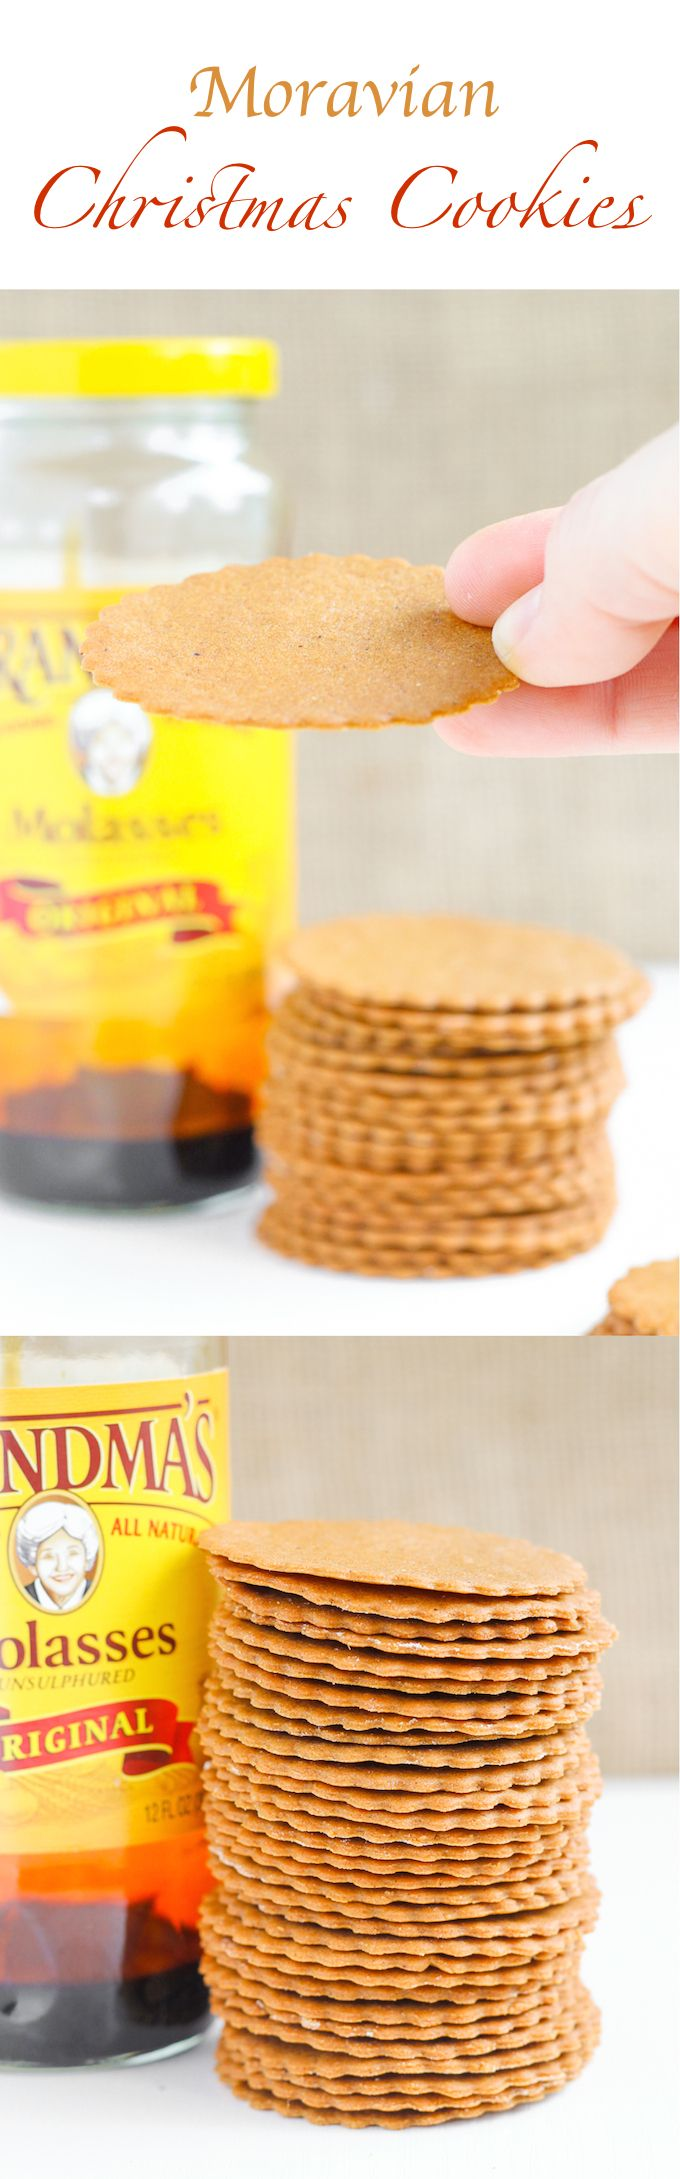 82 best cookie swap images on Pinterest | Christmas baking ...